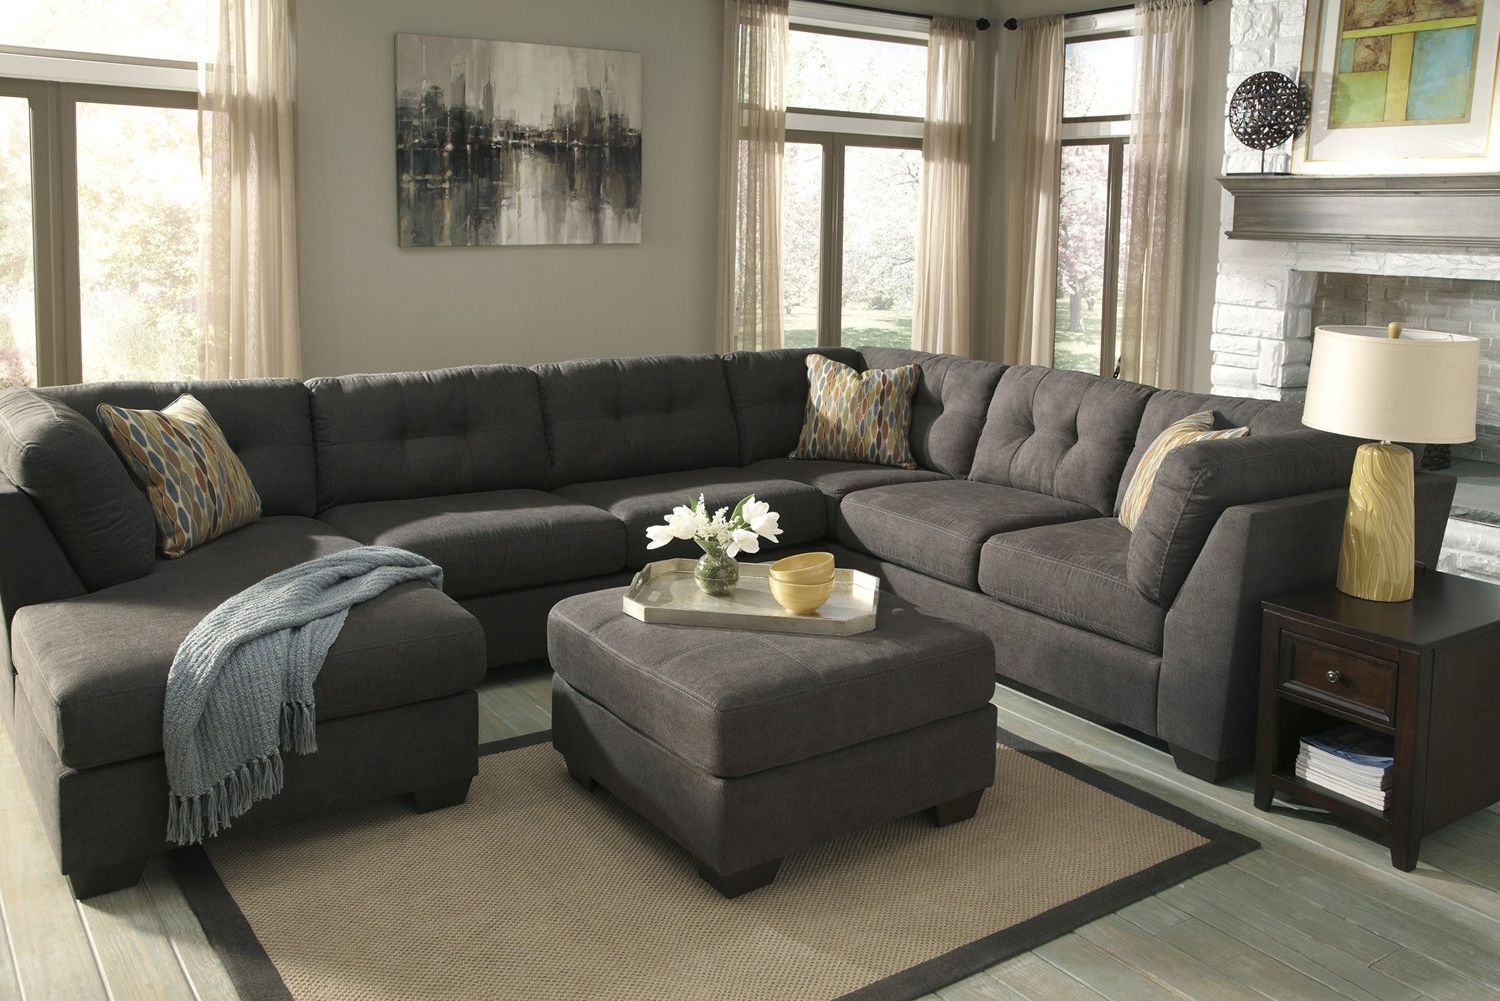 Elk Grove Ca Sectional Sofas With Well Known Delta City Steel 3 Piece Sectional Sofa With Right Arm Facing (Gallery 12 of 20)